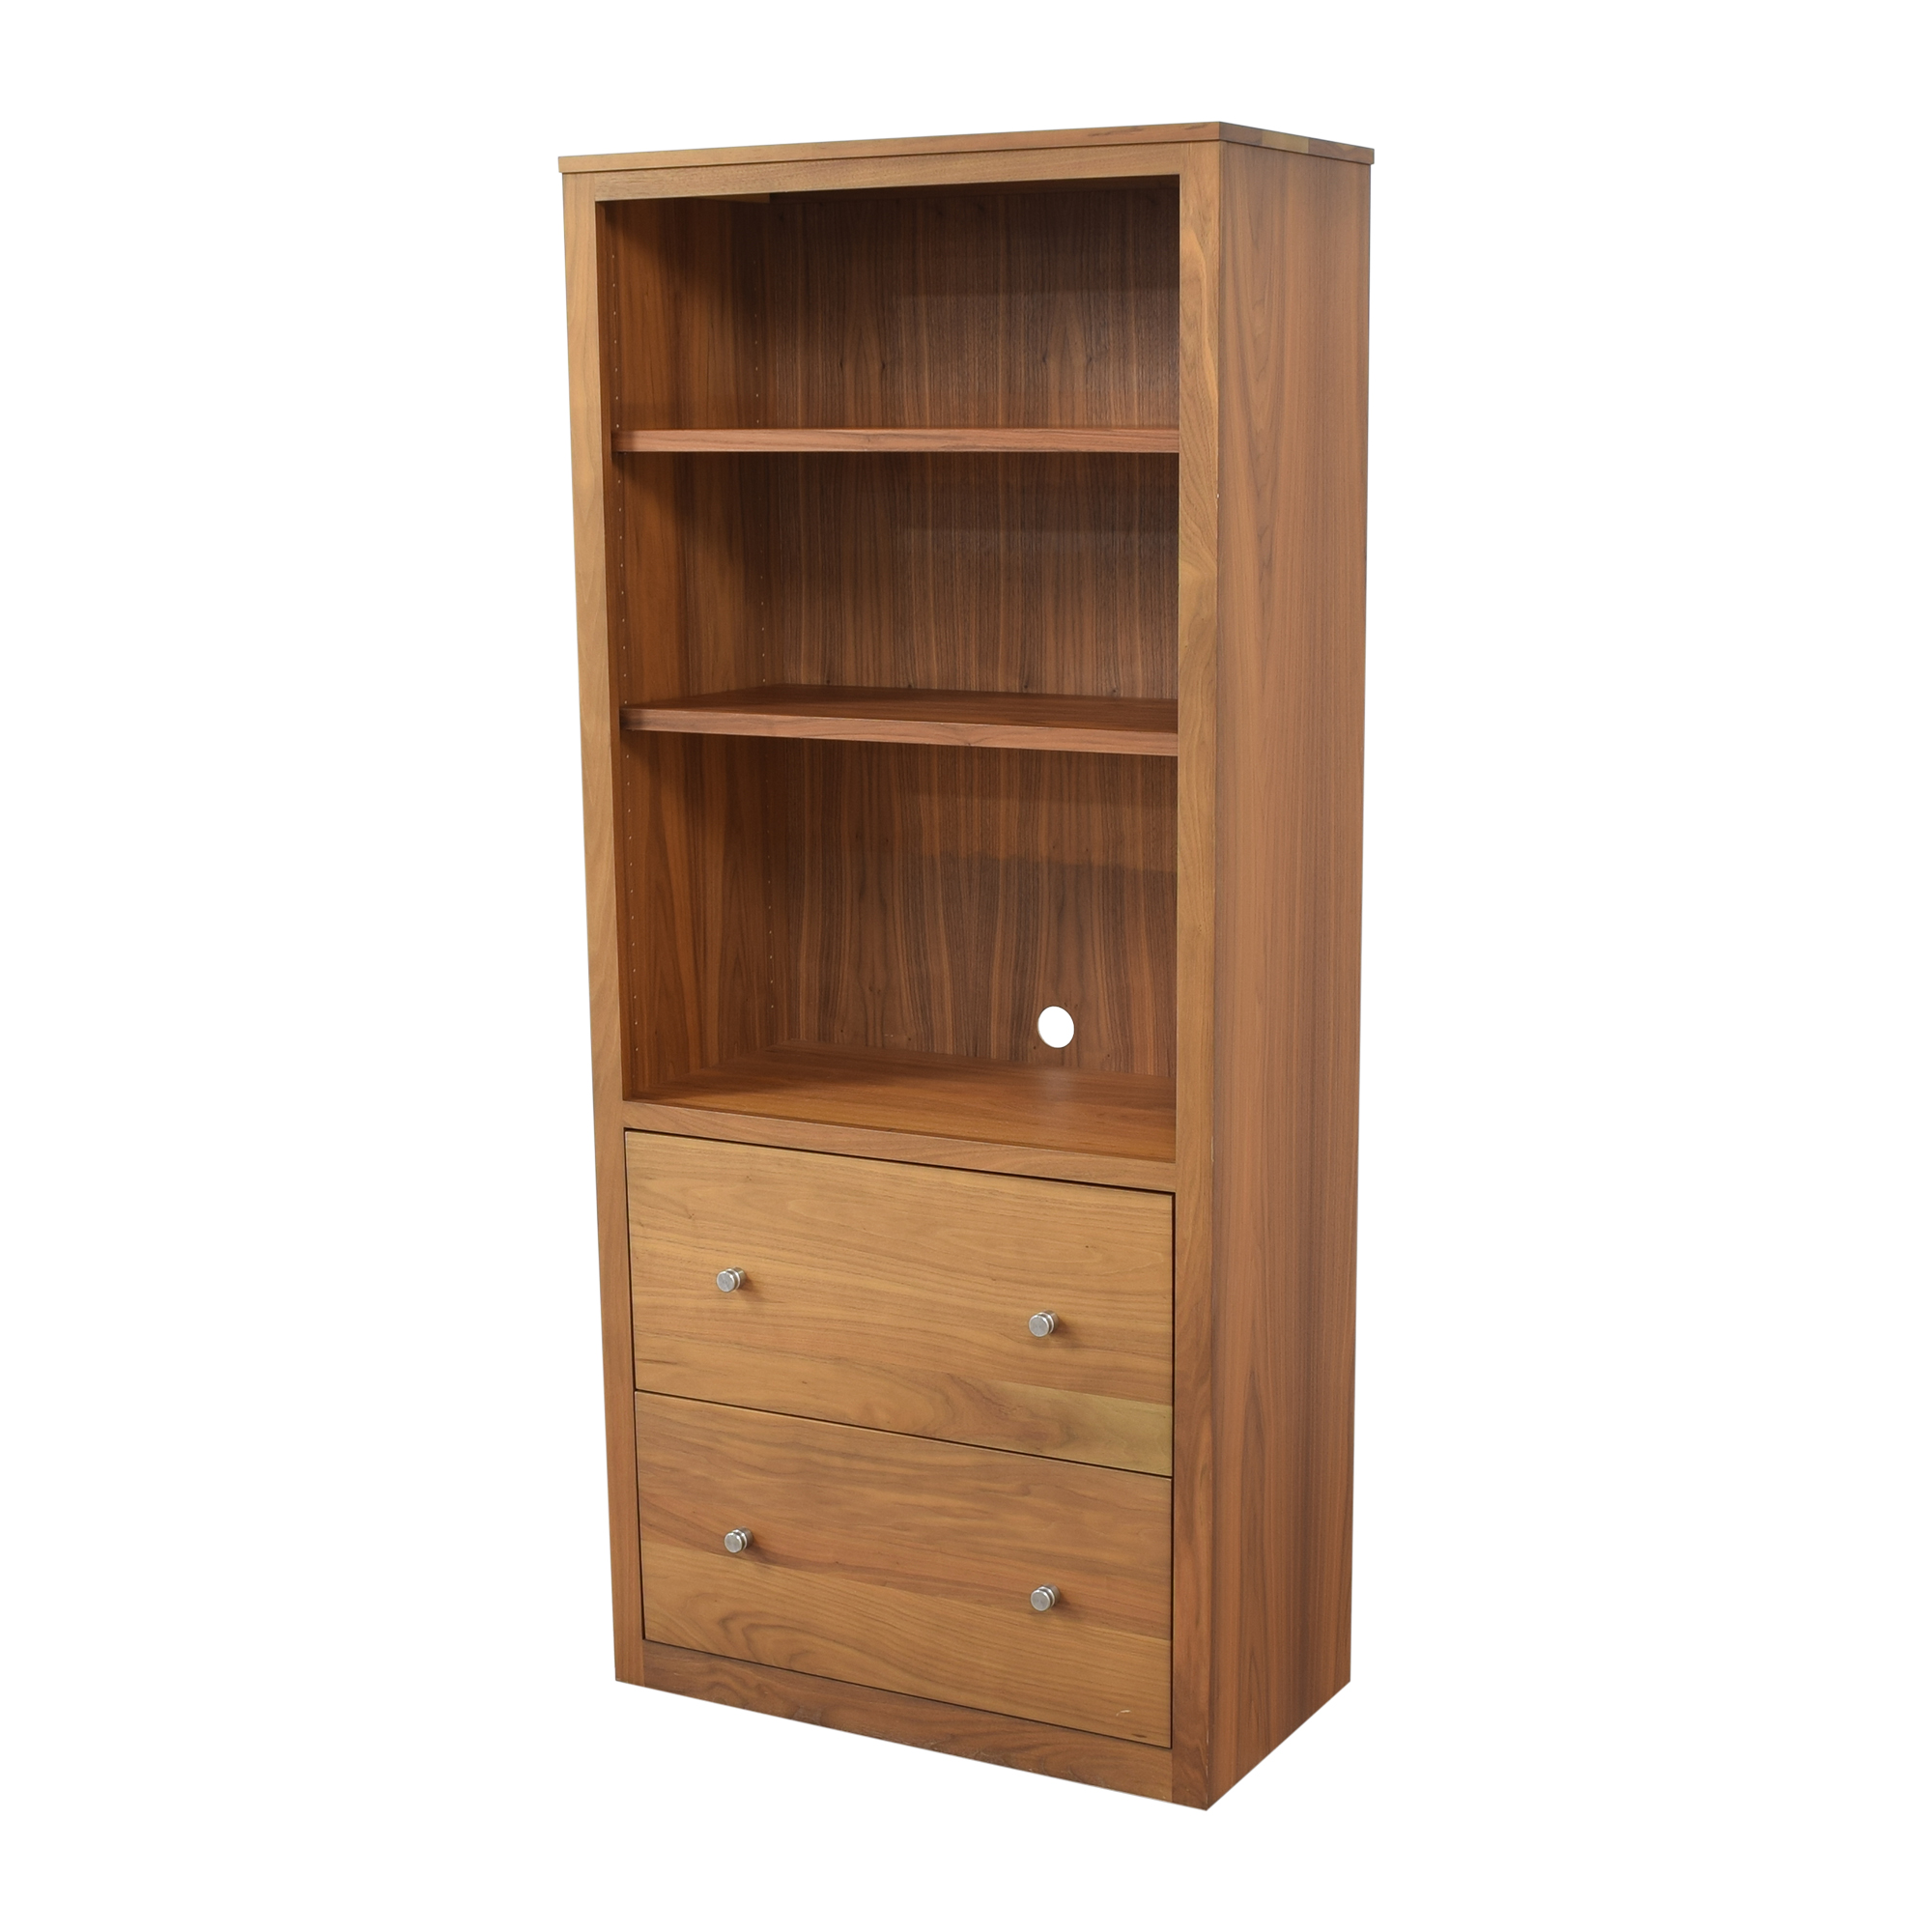 Room & Board Room & Board Woodwind Bookcase with Drawers Storage